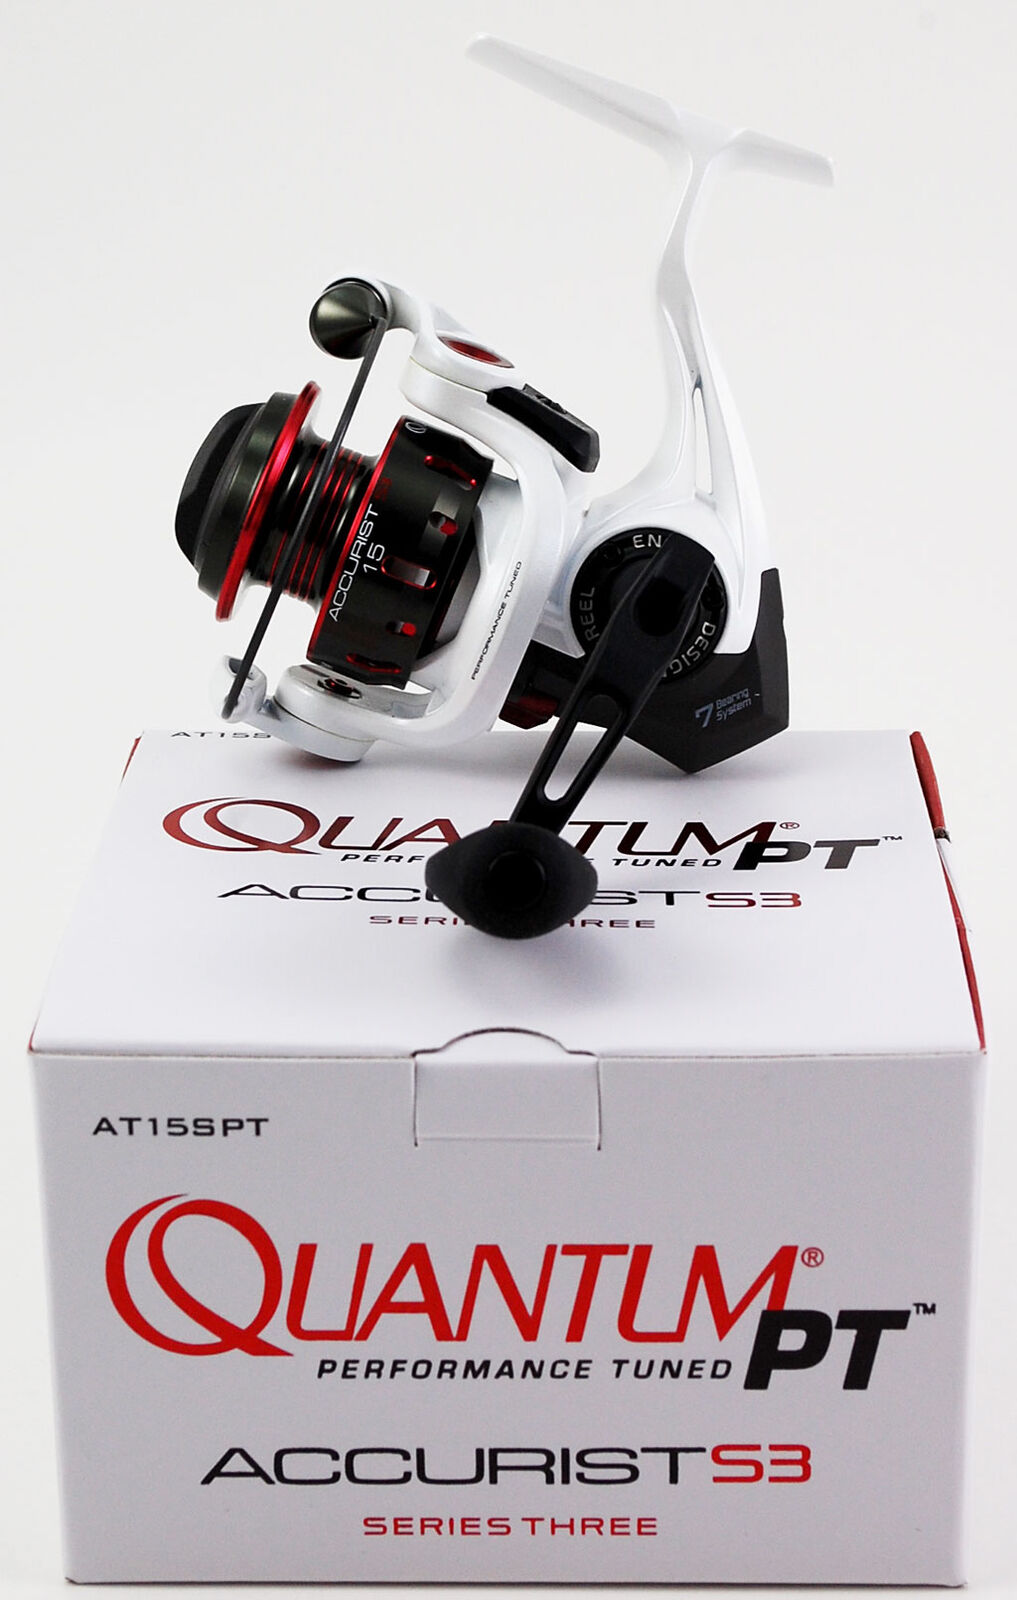 QUANTUM RATIO PT ACCURIST S3 15 AT15SPT 5.3:1 GEAR RATIO QUANTUM SPINNING REEL f75220